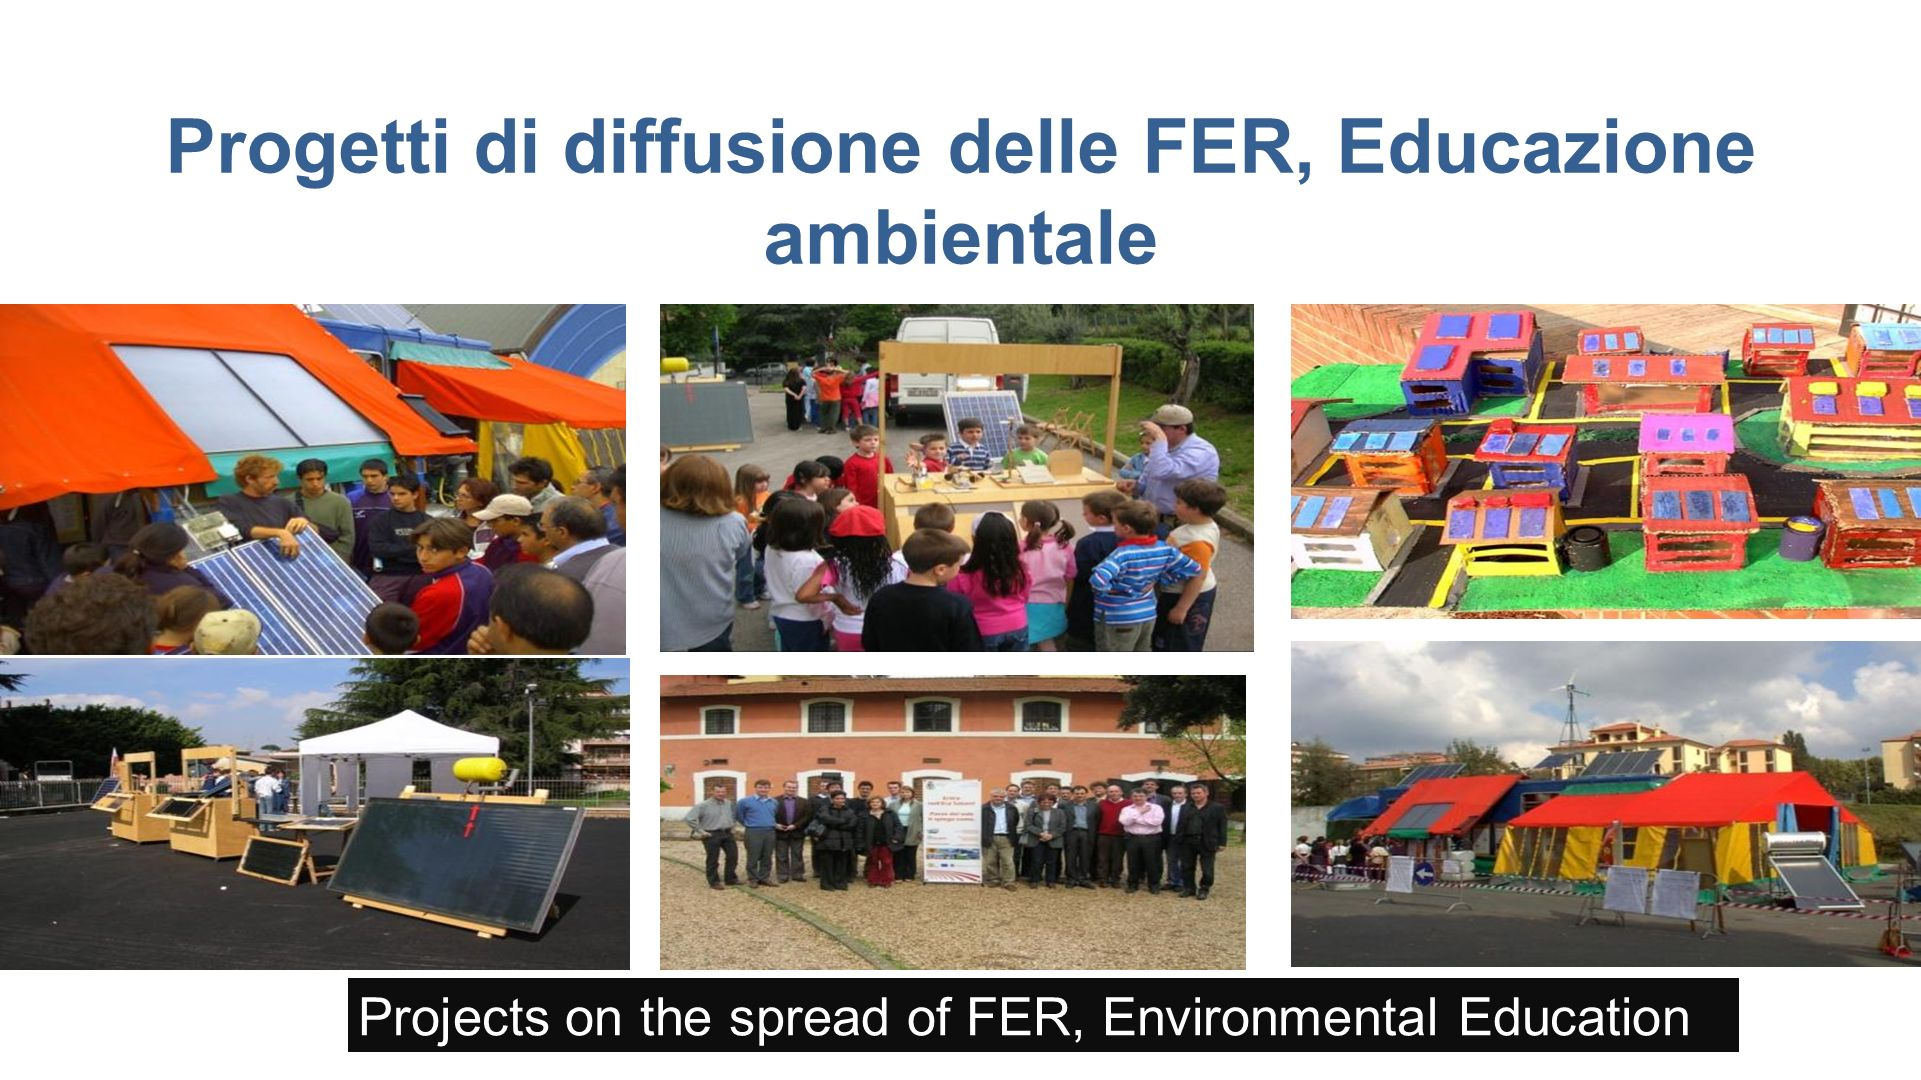 Progetti di diffusione delle FER, Educazione ambientale Projects on the spread of FER, Environmental Education